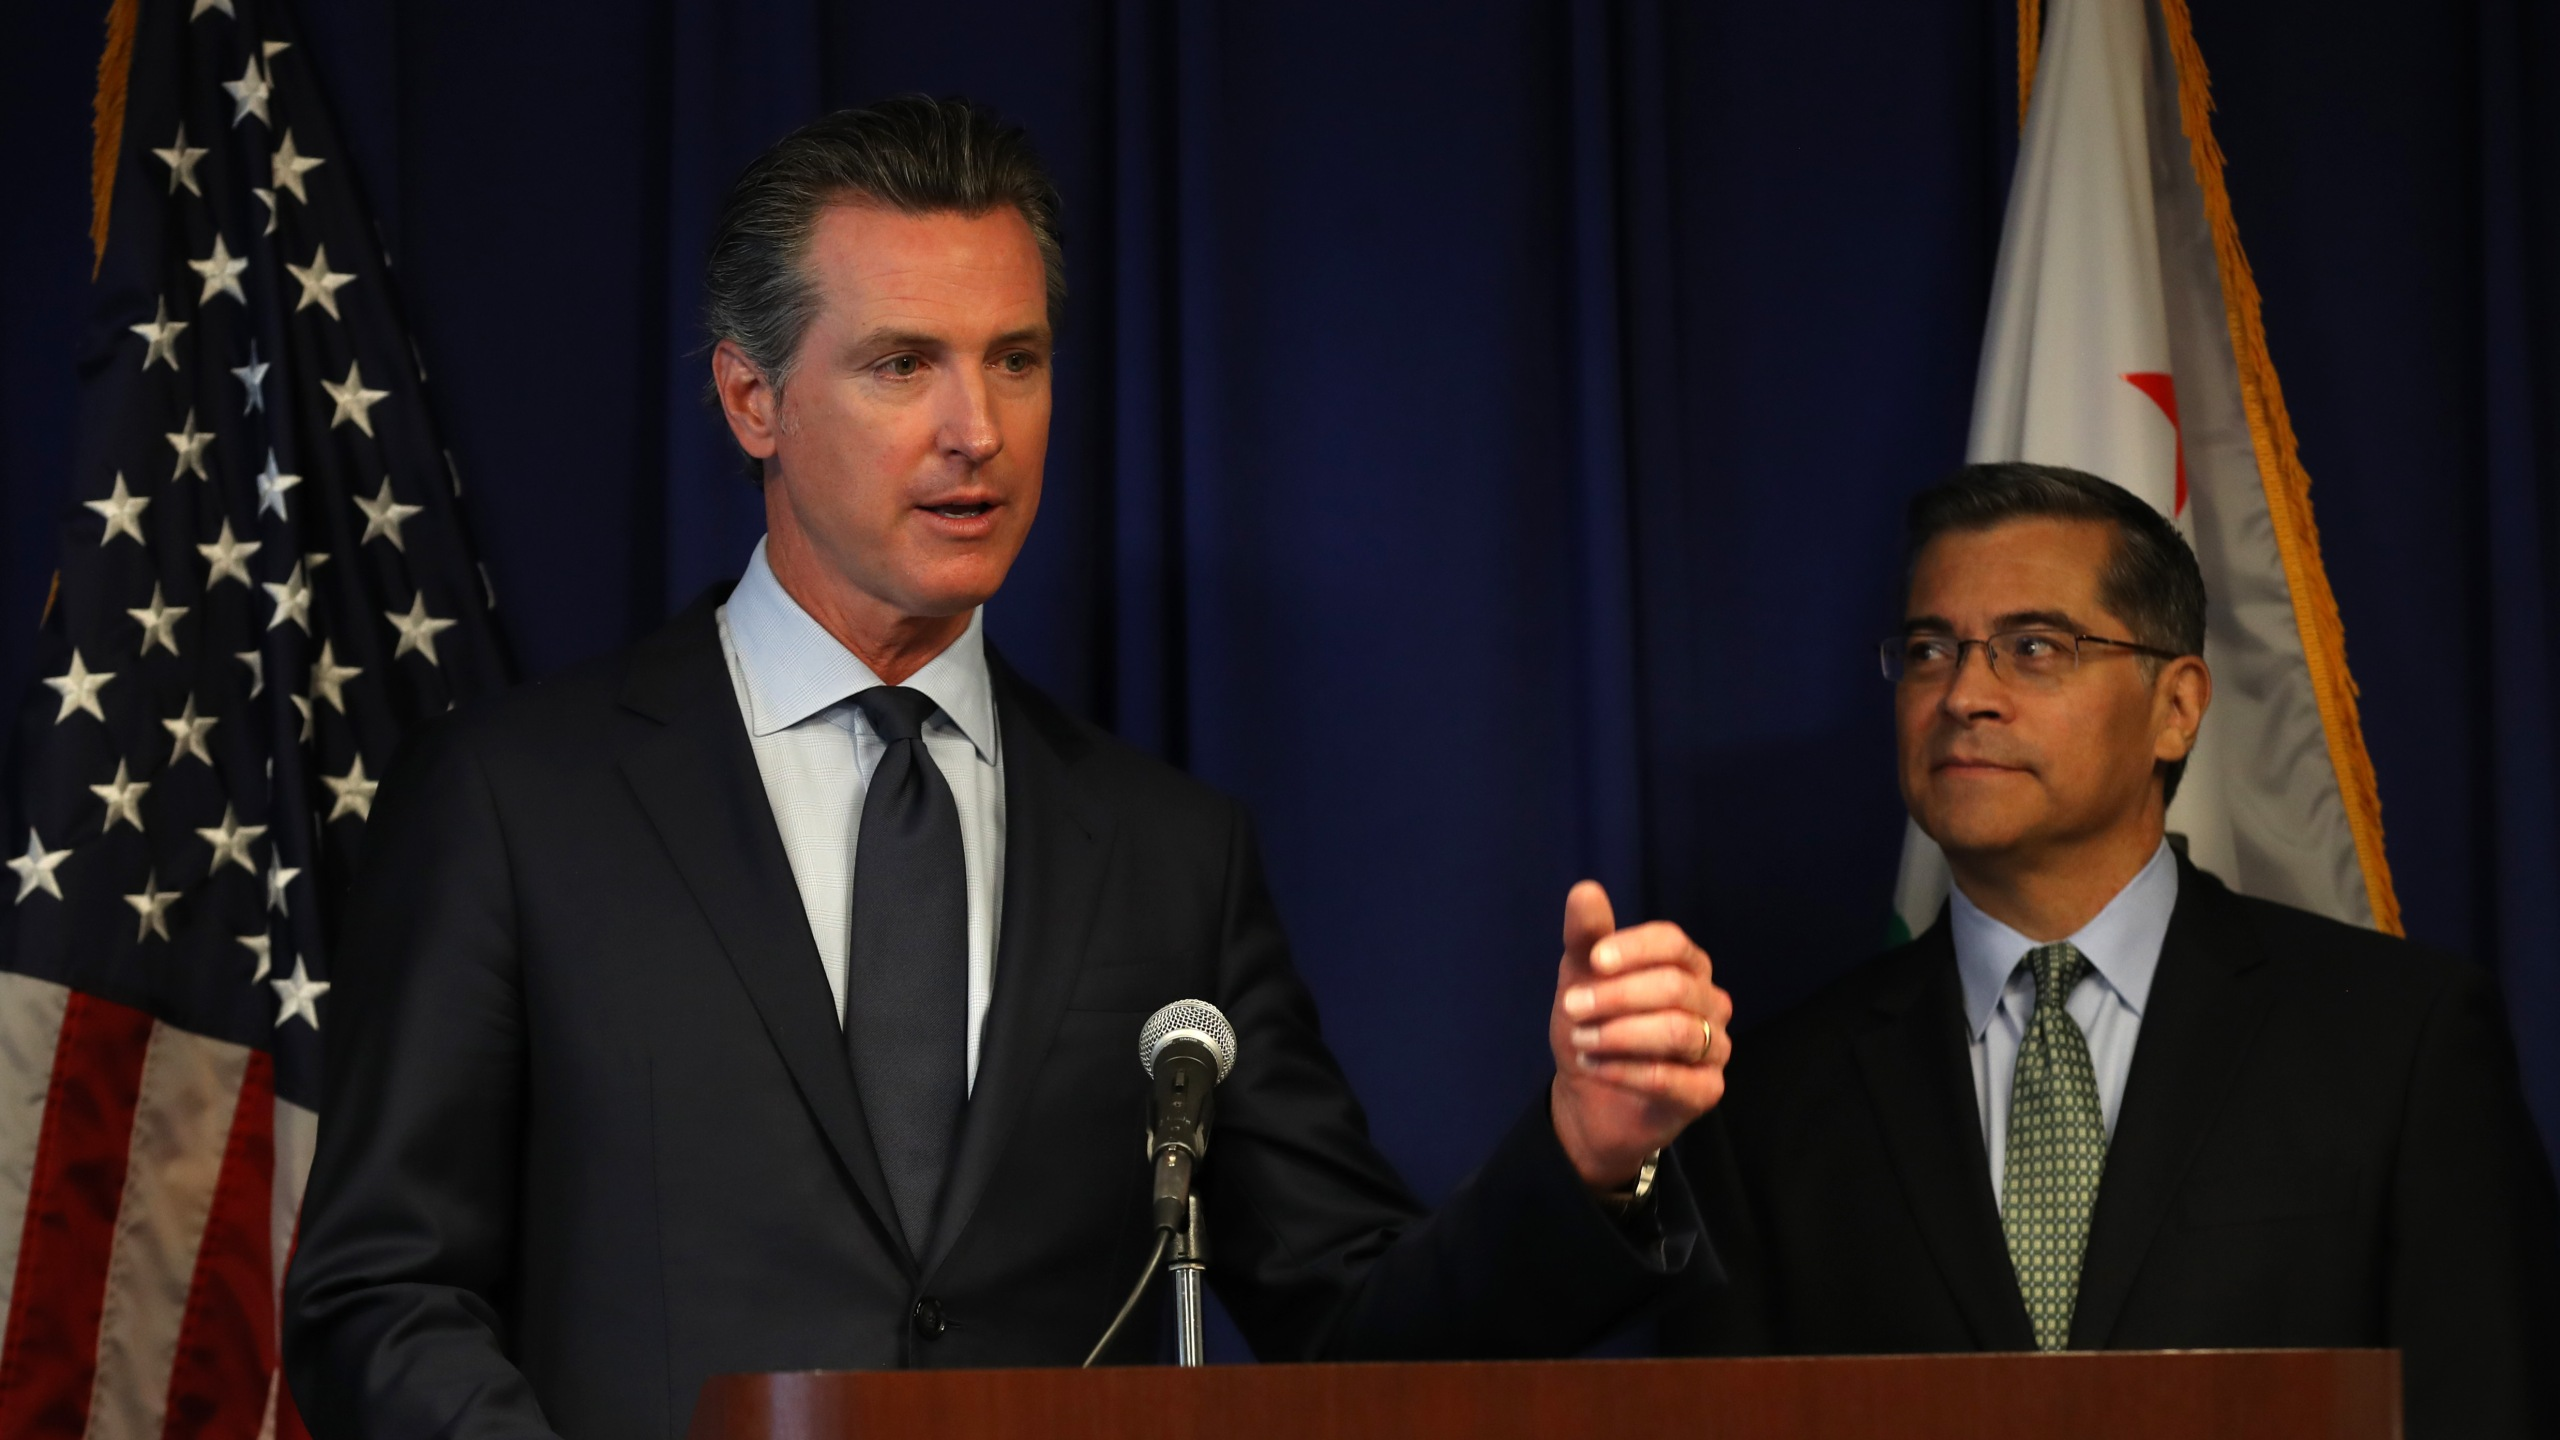 California attorney general Xavier Becerra looks on as California Gov. Gavin Newson speaks during a news conference at the California justice department on Sept. 18, 2019, in Sacramento. (Credit: Justin Sullivan/Getty Images)